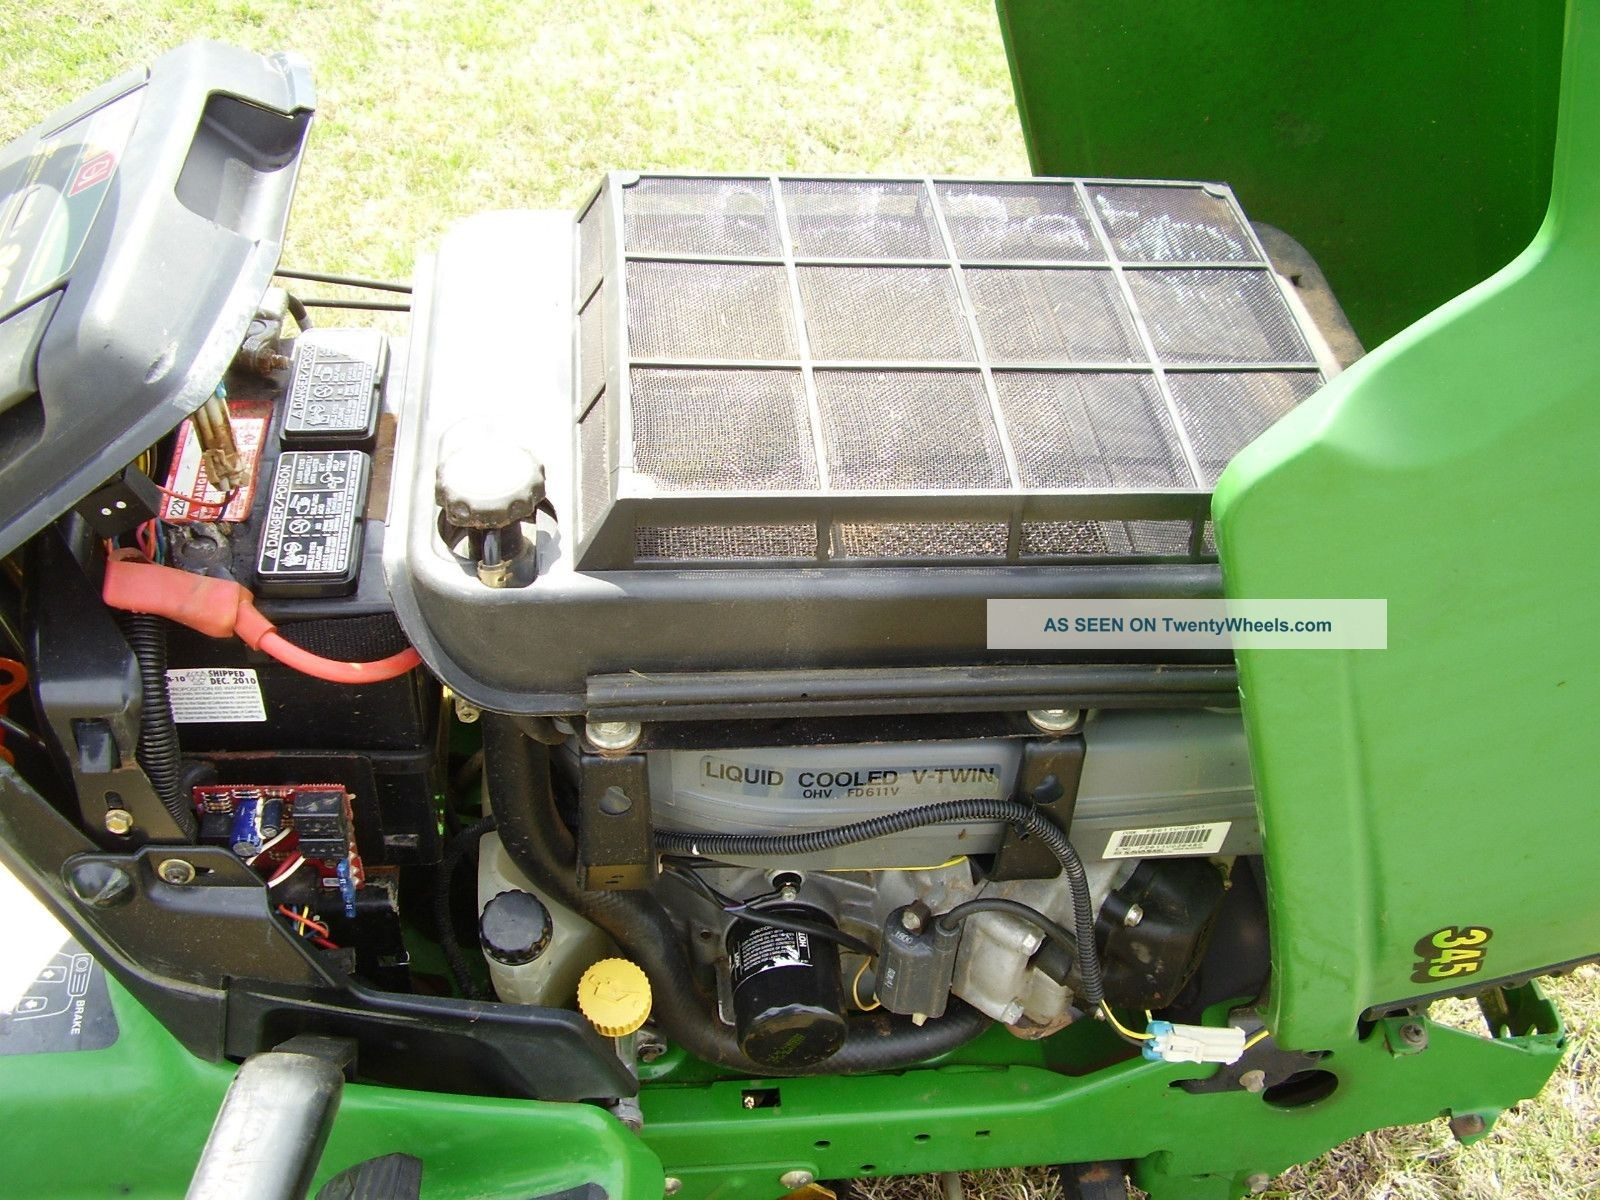 John Deere Modle 345 Electrical John Deere 345 Water Cooled 48 Inch Cut Power Steering Of John Deere Modle 345 Electrical